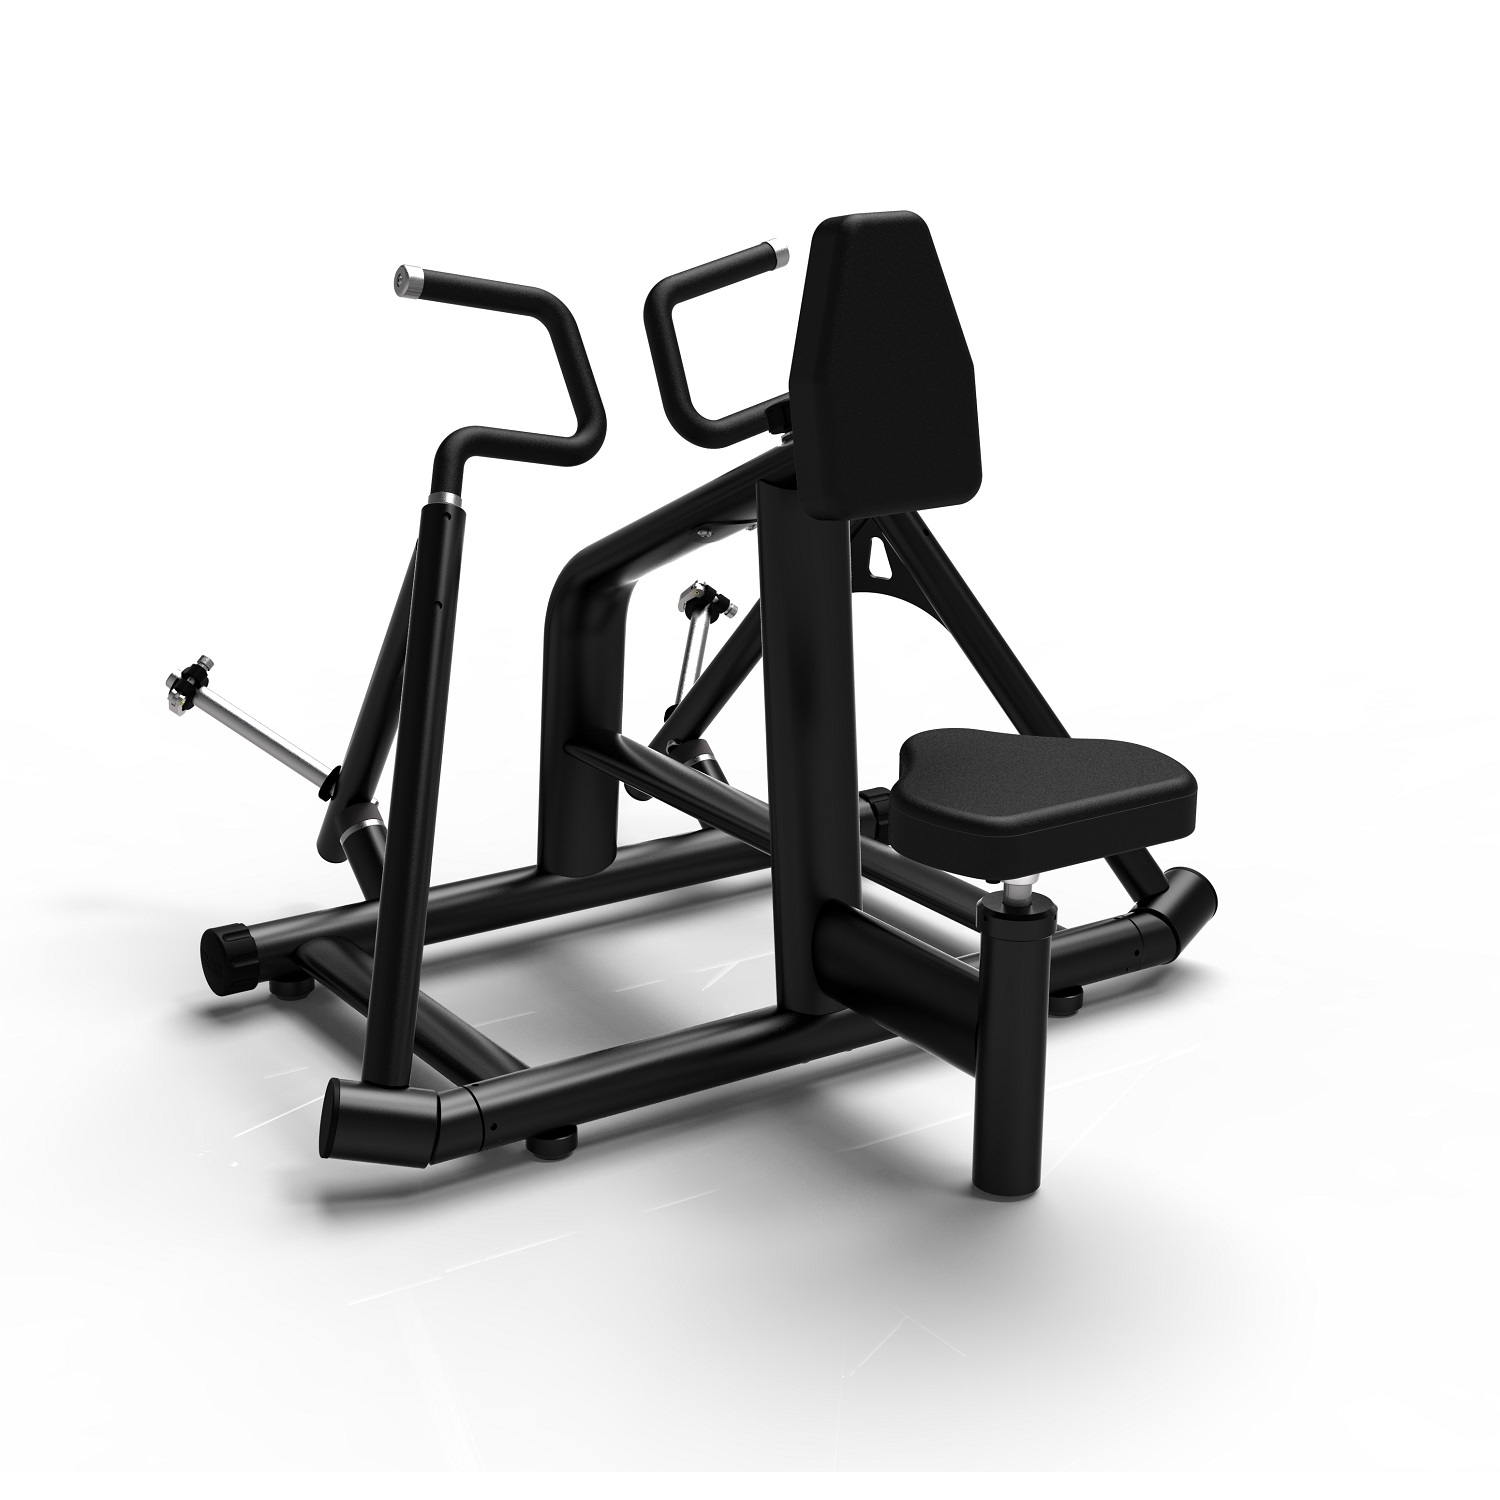 M-9241/50 Convergent seated rowing